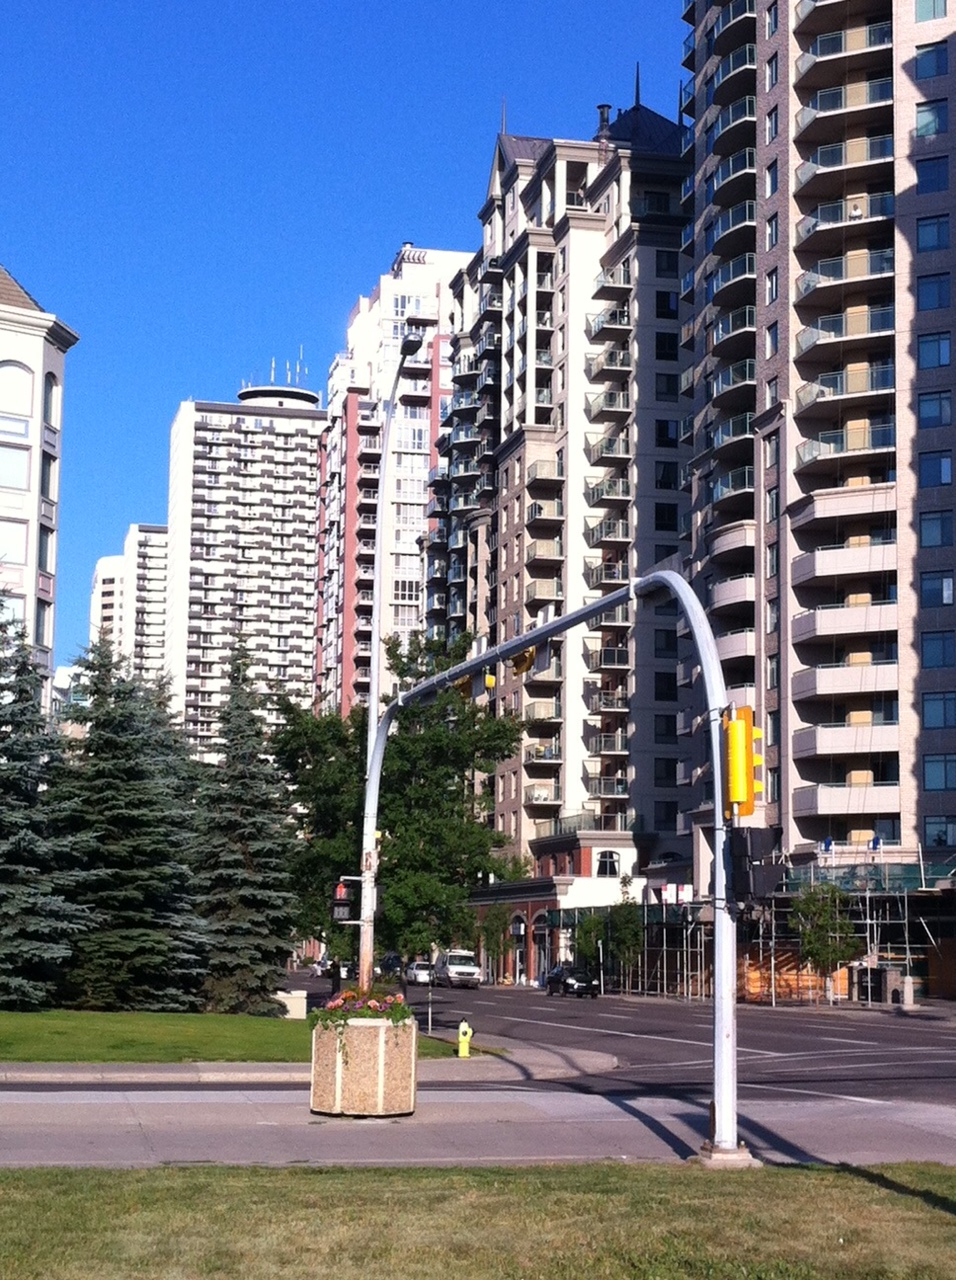 Wall of condos and apartments in the west end of Downtown Calgary.